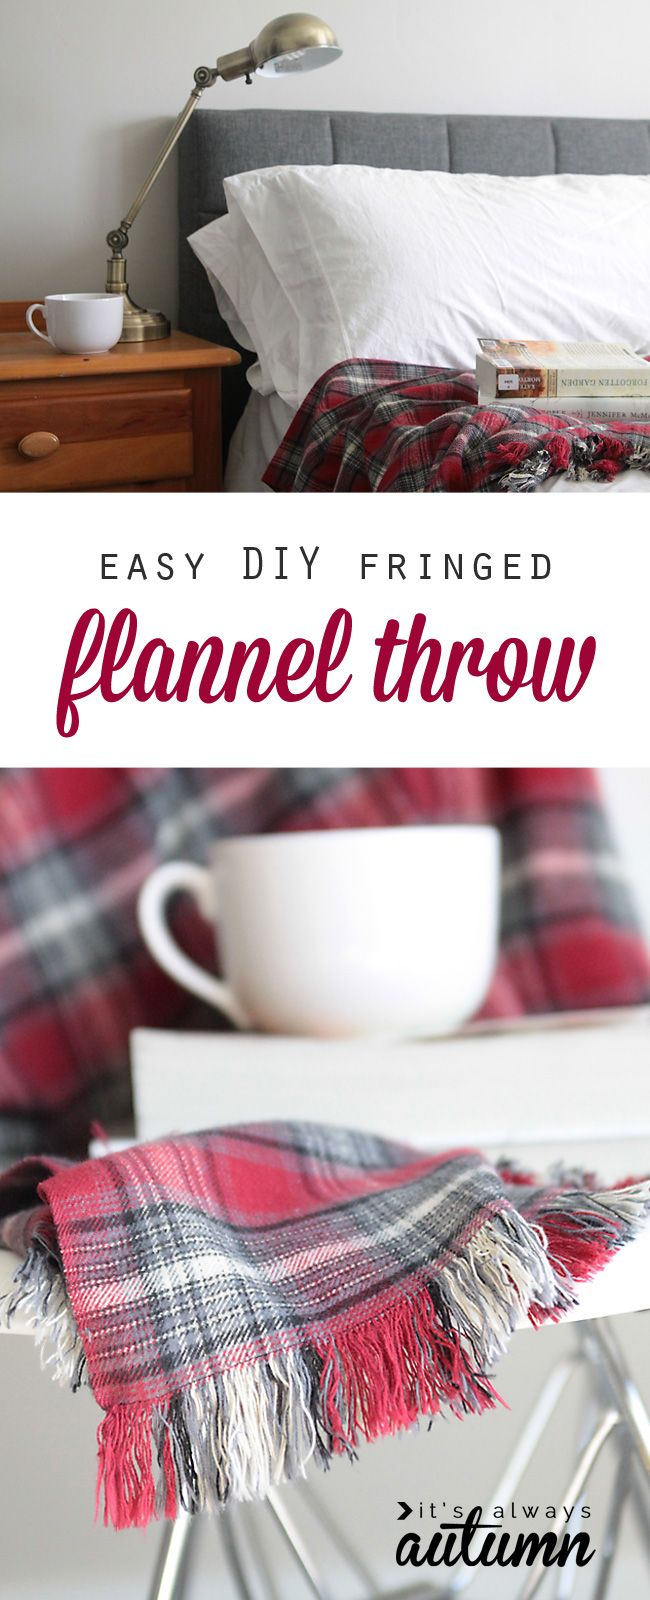 Easy diy fringed flannel throw great gift idea handmade christmas this diy fringed flannel throw is pretty cozy and easy to make its handmade christmas giftsinexpensive solutioingenieria Choice Image